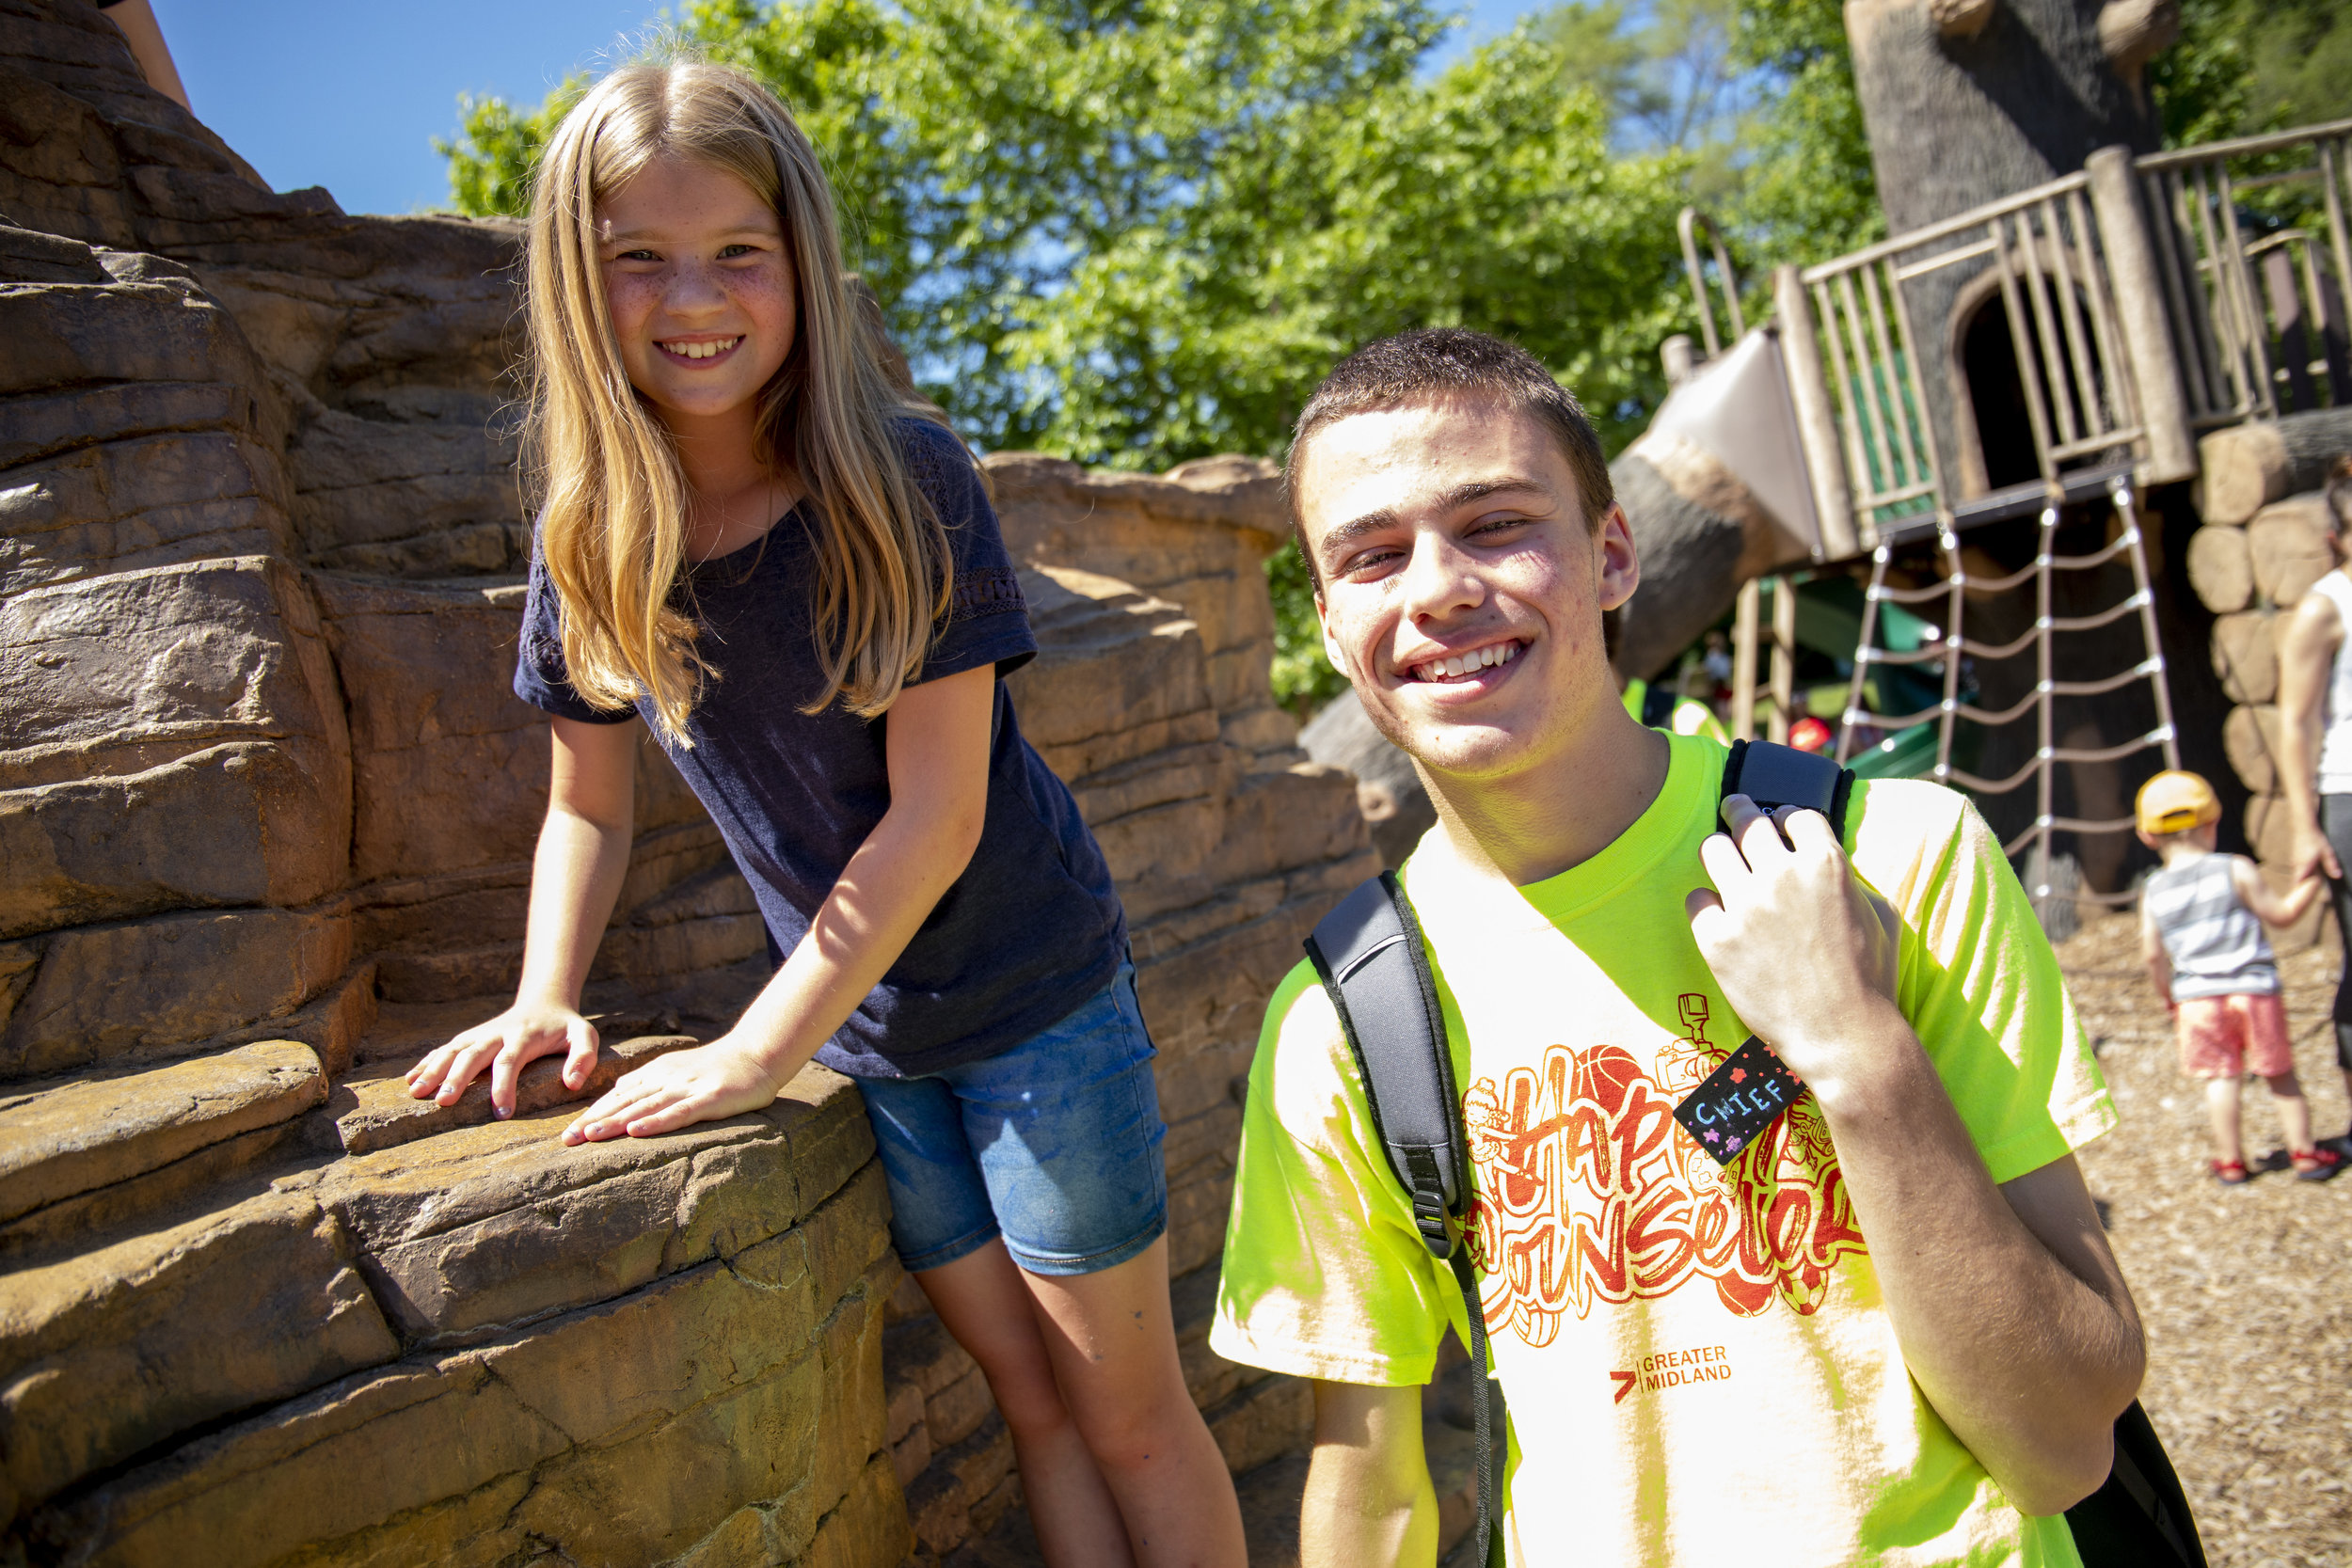 Griffin, once a camper that climbed this rock, now hangs with Lexi as she plays with friends.